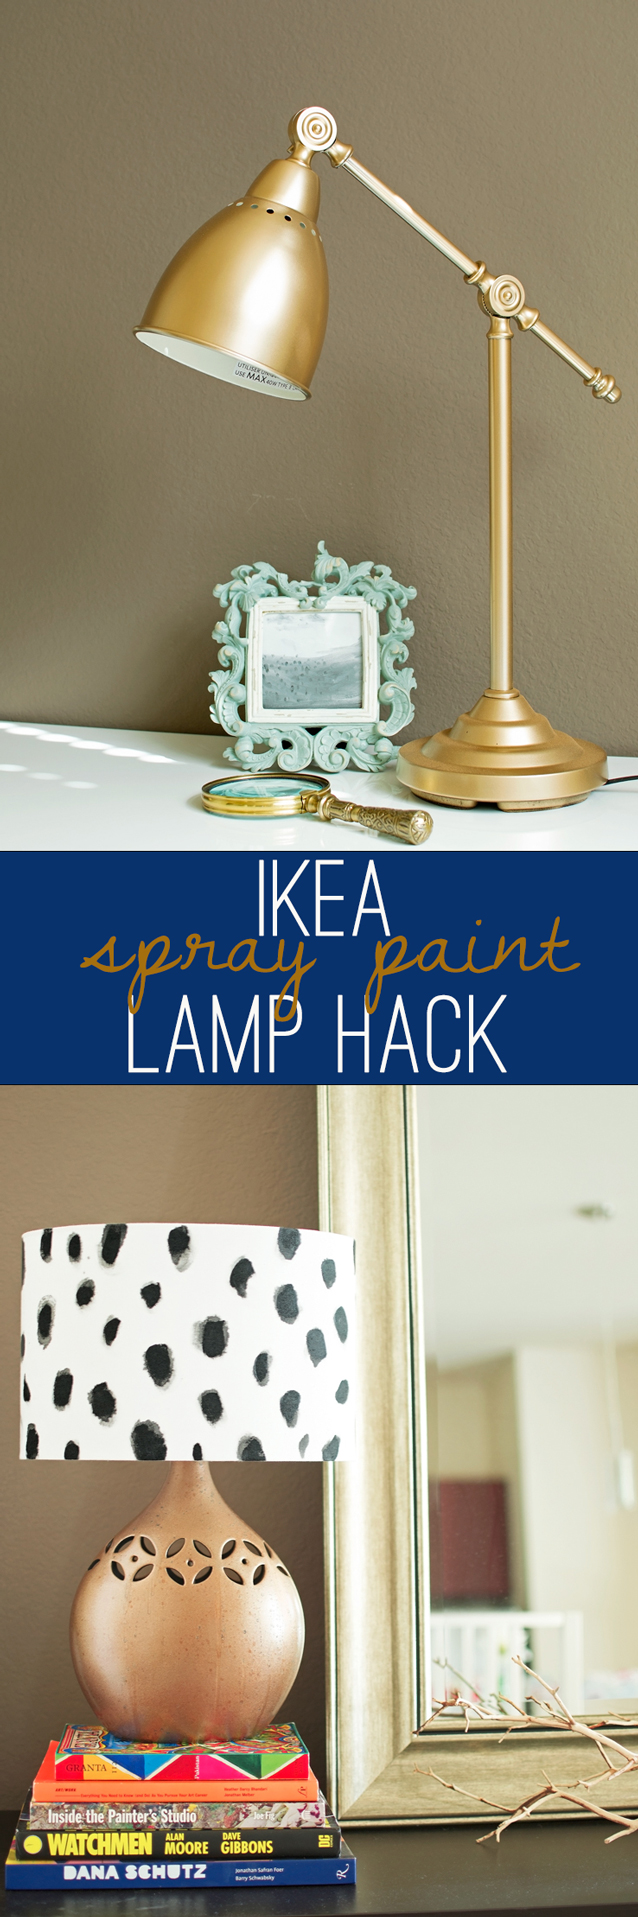 IKEA-Lamp-hack-and-spotted-lamp